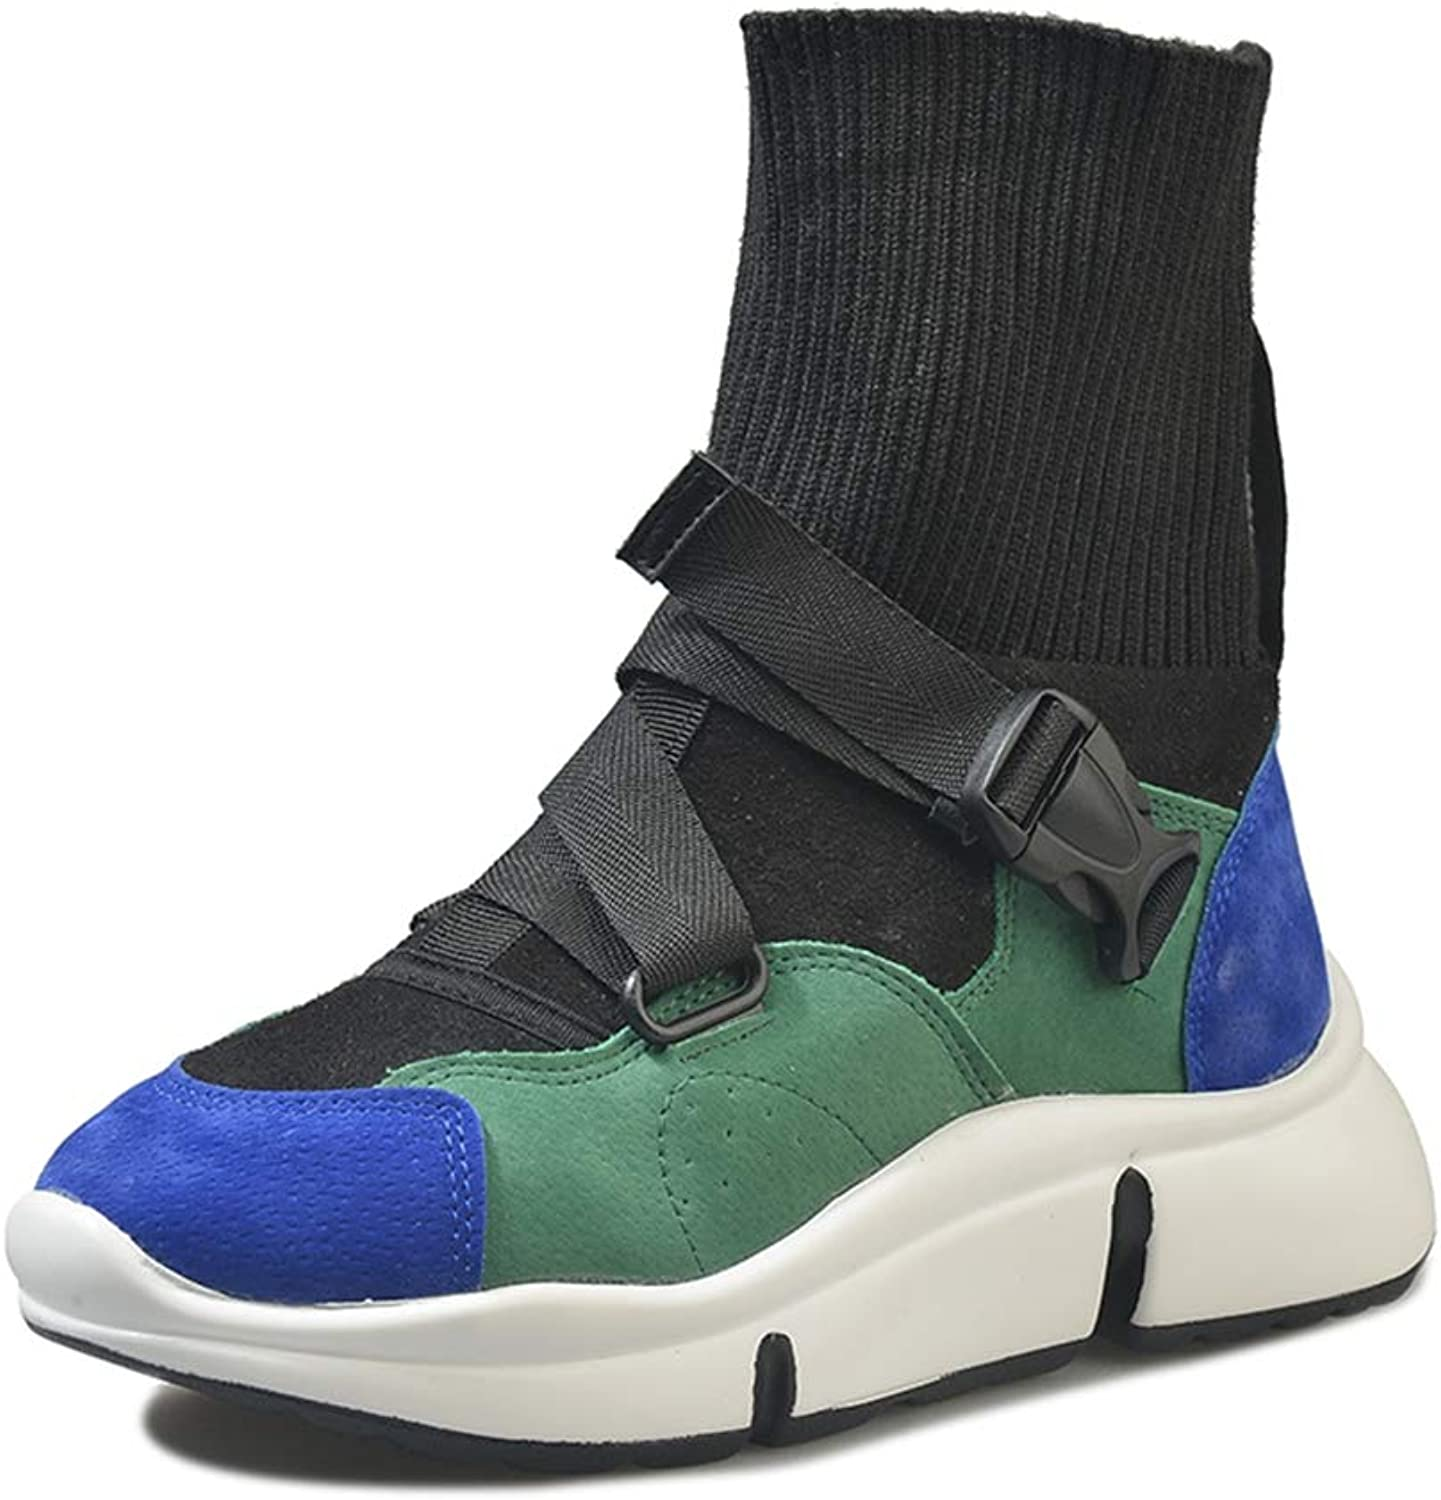 Fashion Sock Ankle Boots Women High Top Sneakers Stretch Fabric Casual Platform shoes Woman Rubber Footwear